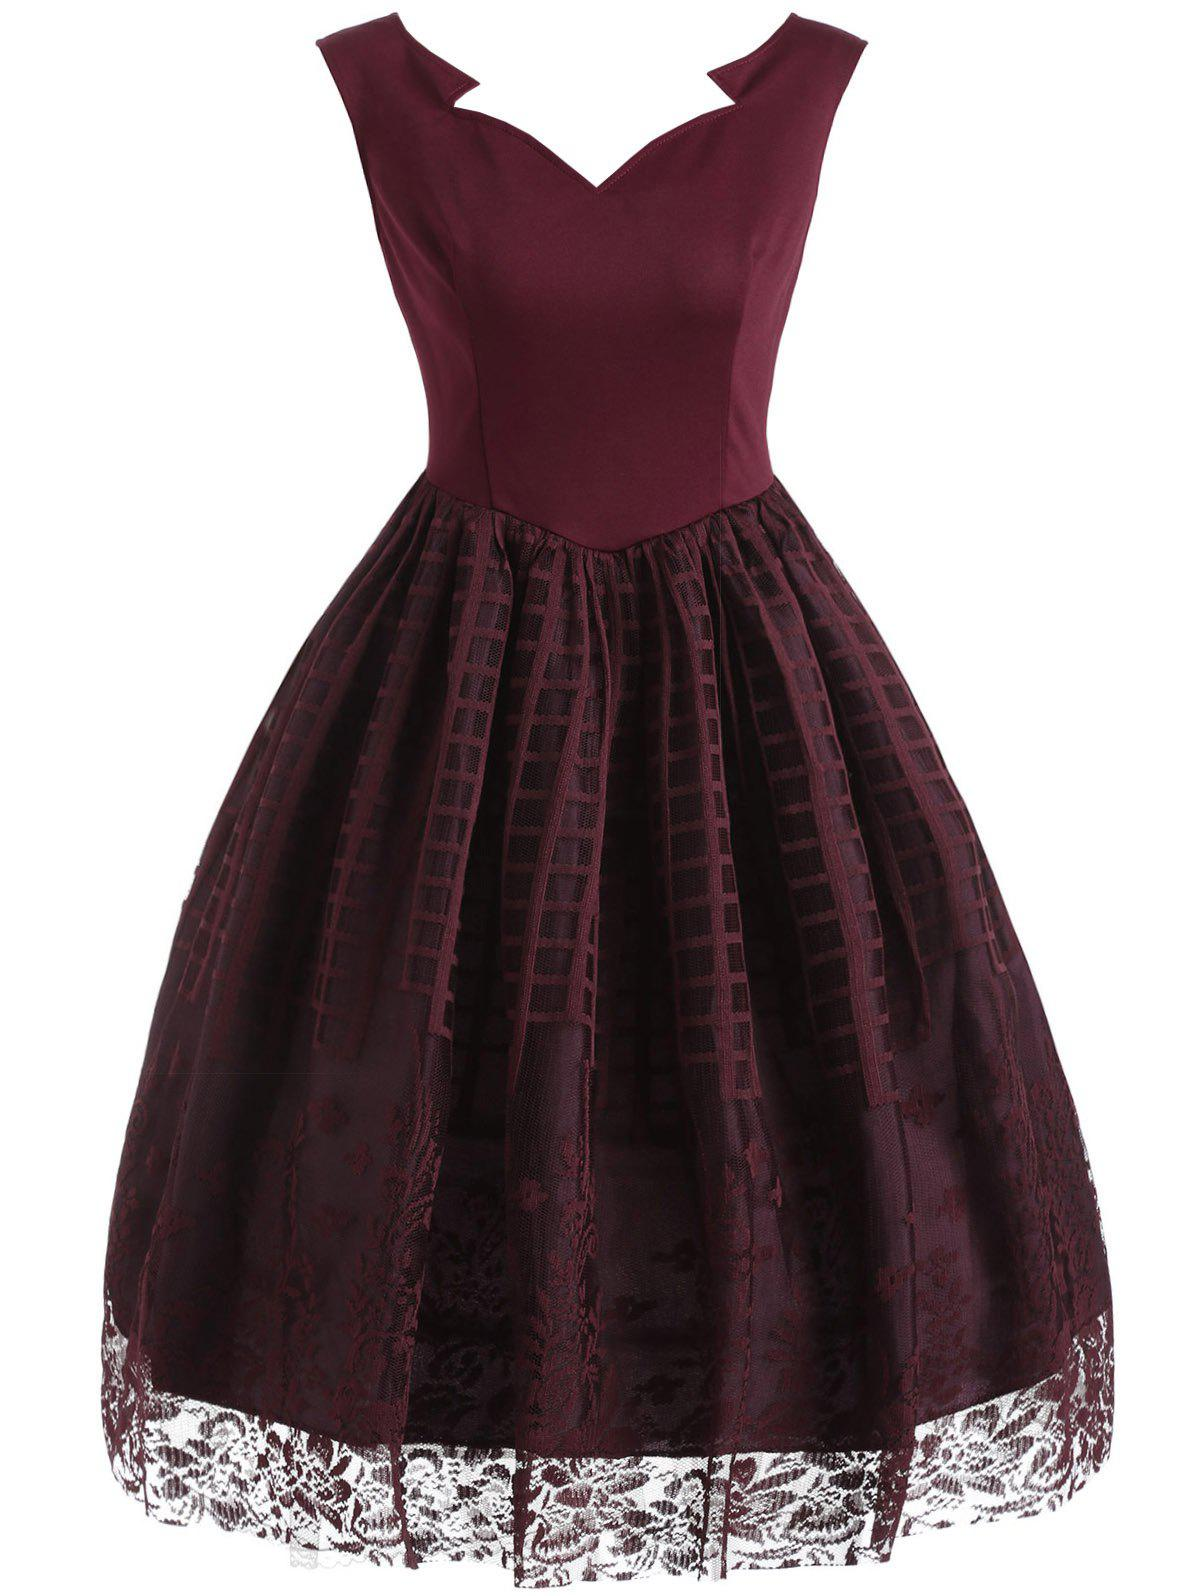 Plaid Floral Lace Sleeveless Vintage Dress - Rouge vineux L